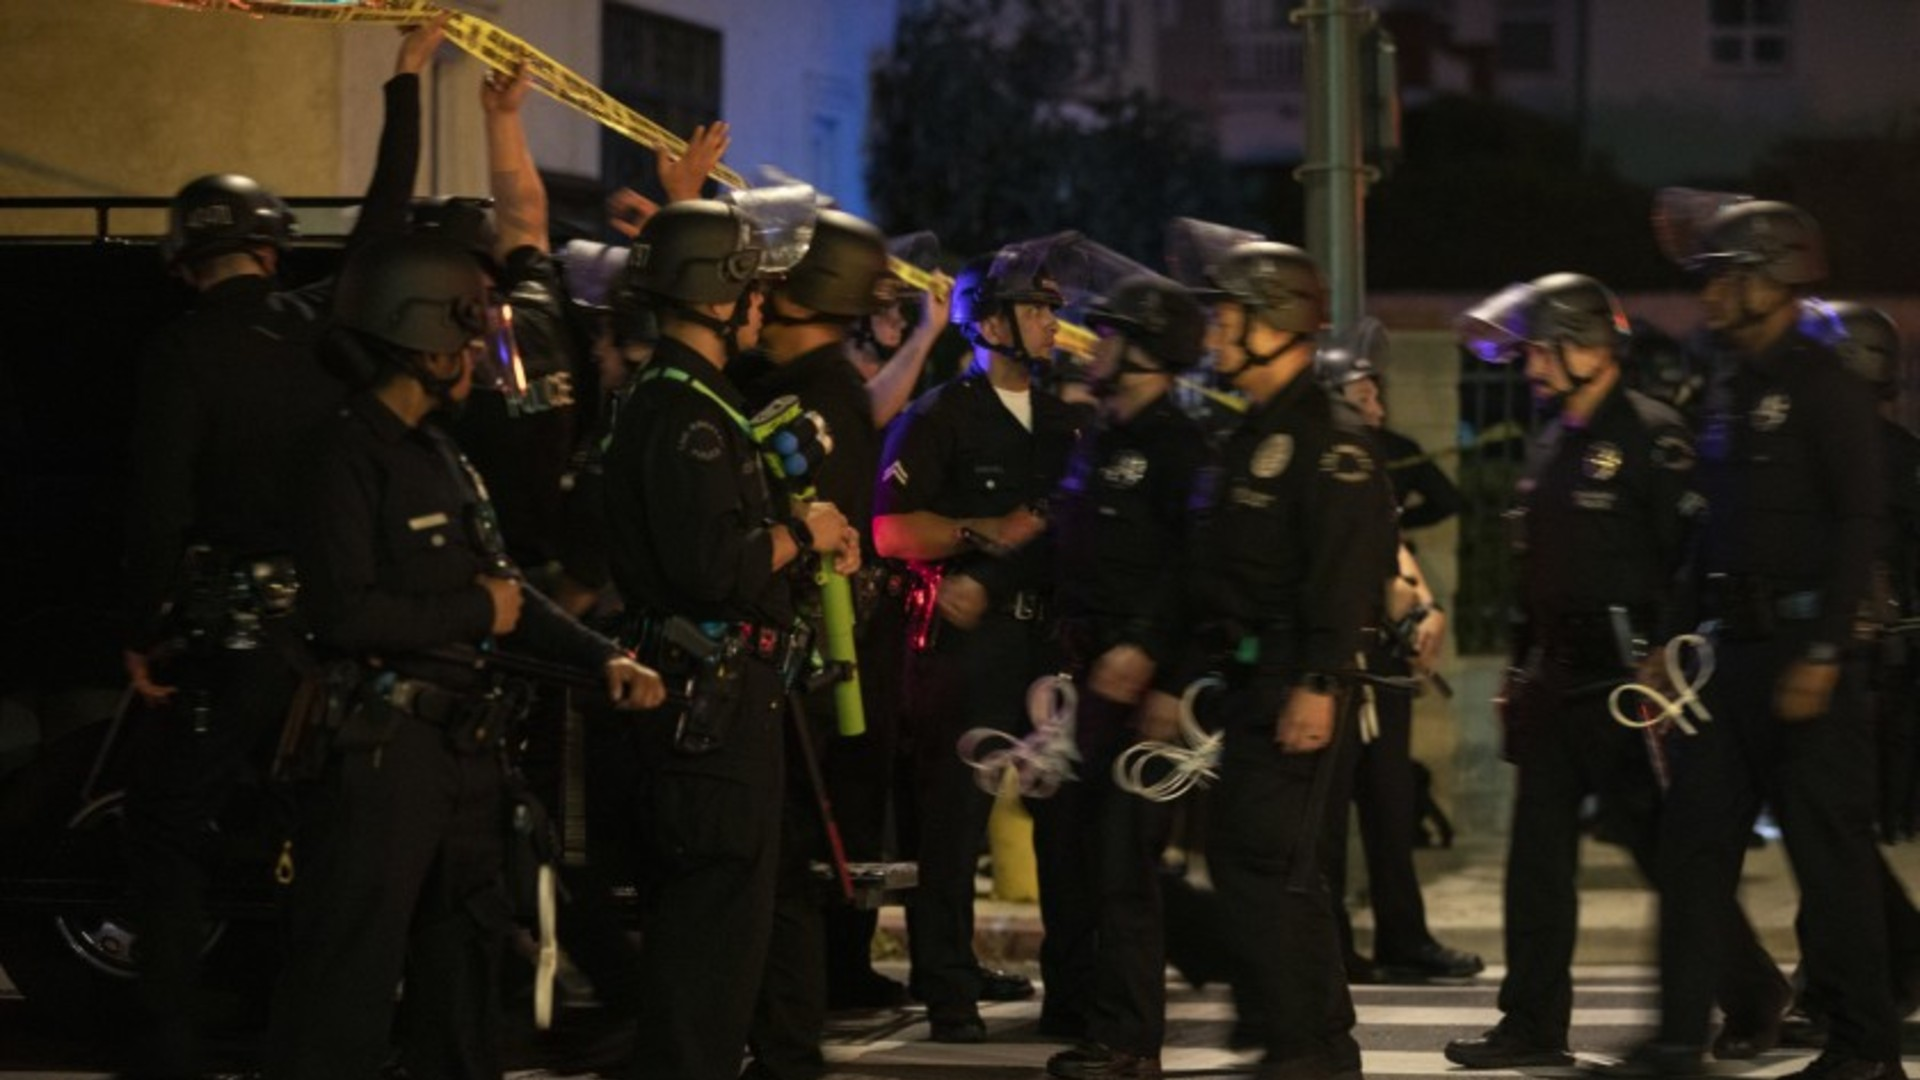 Los Angeles police officers arrive to arrests protesters for curfew violations after a day of peaceful rally sparked by the death of George Floyd. (Francine Orr/Los Angeles Times)